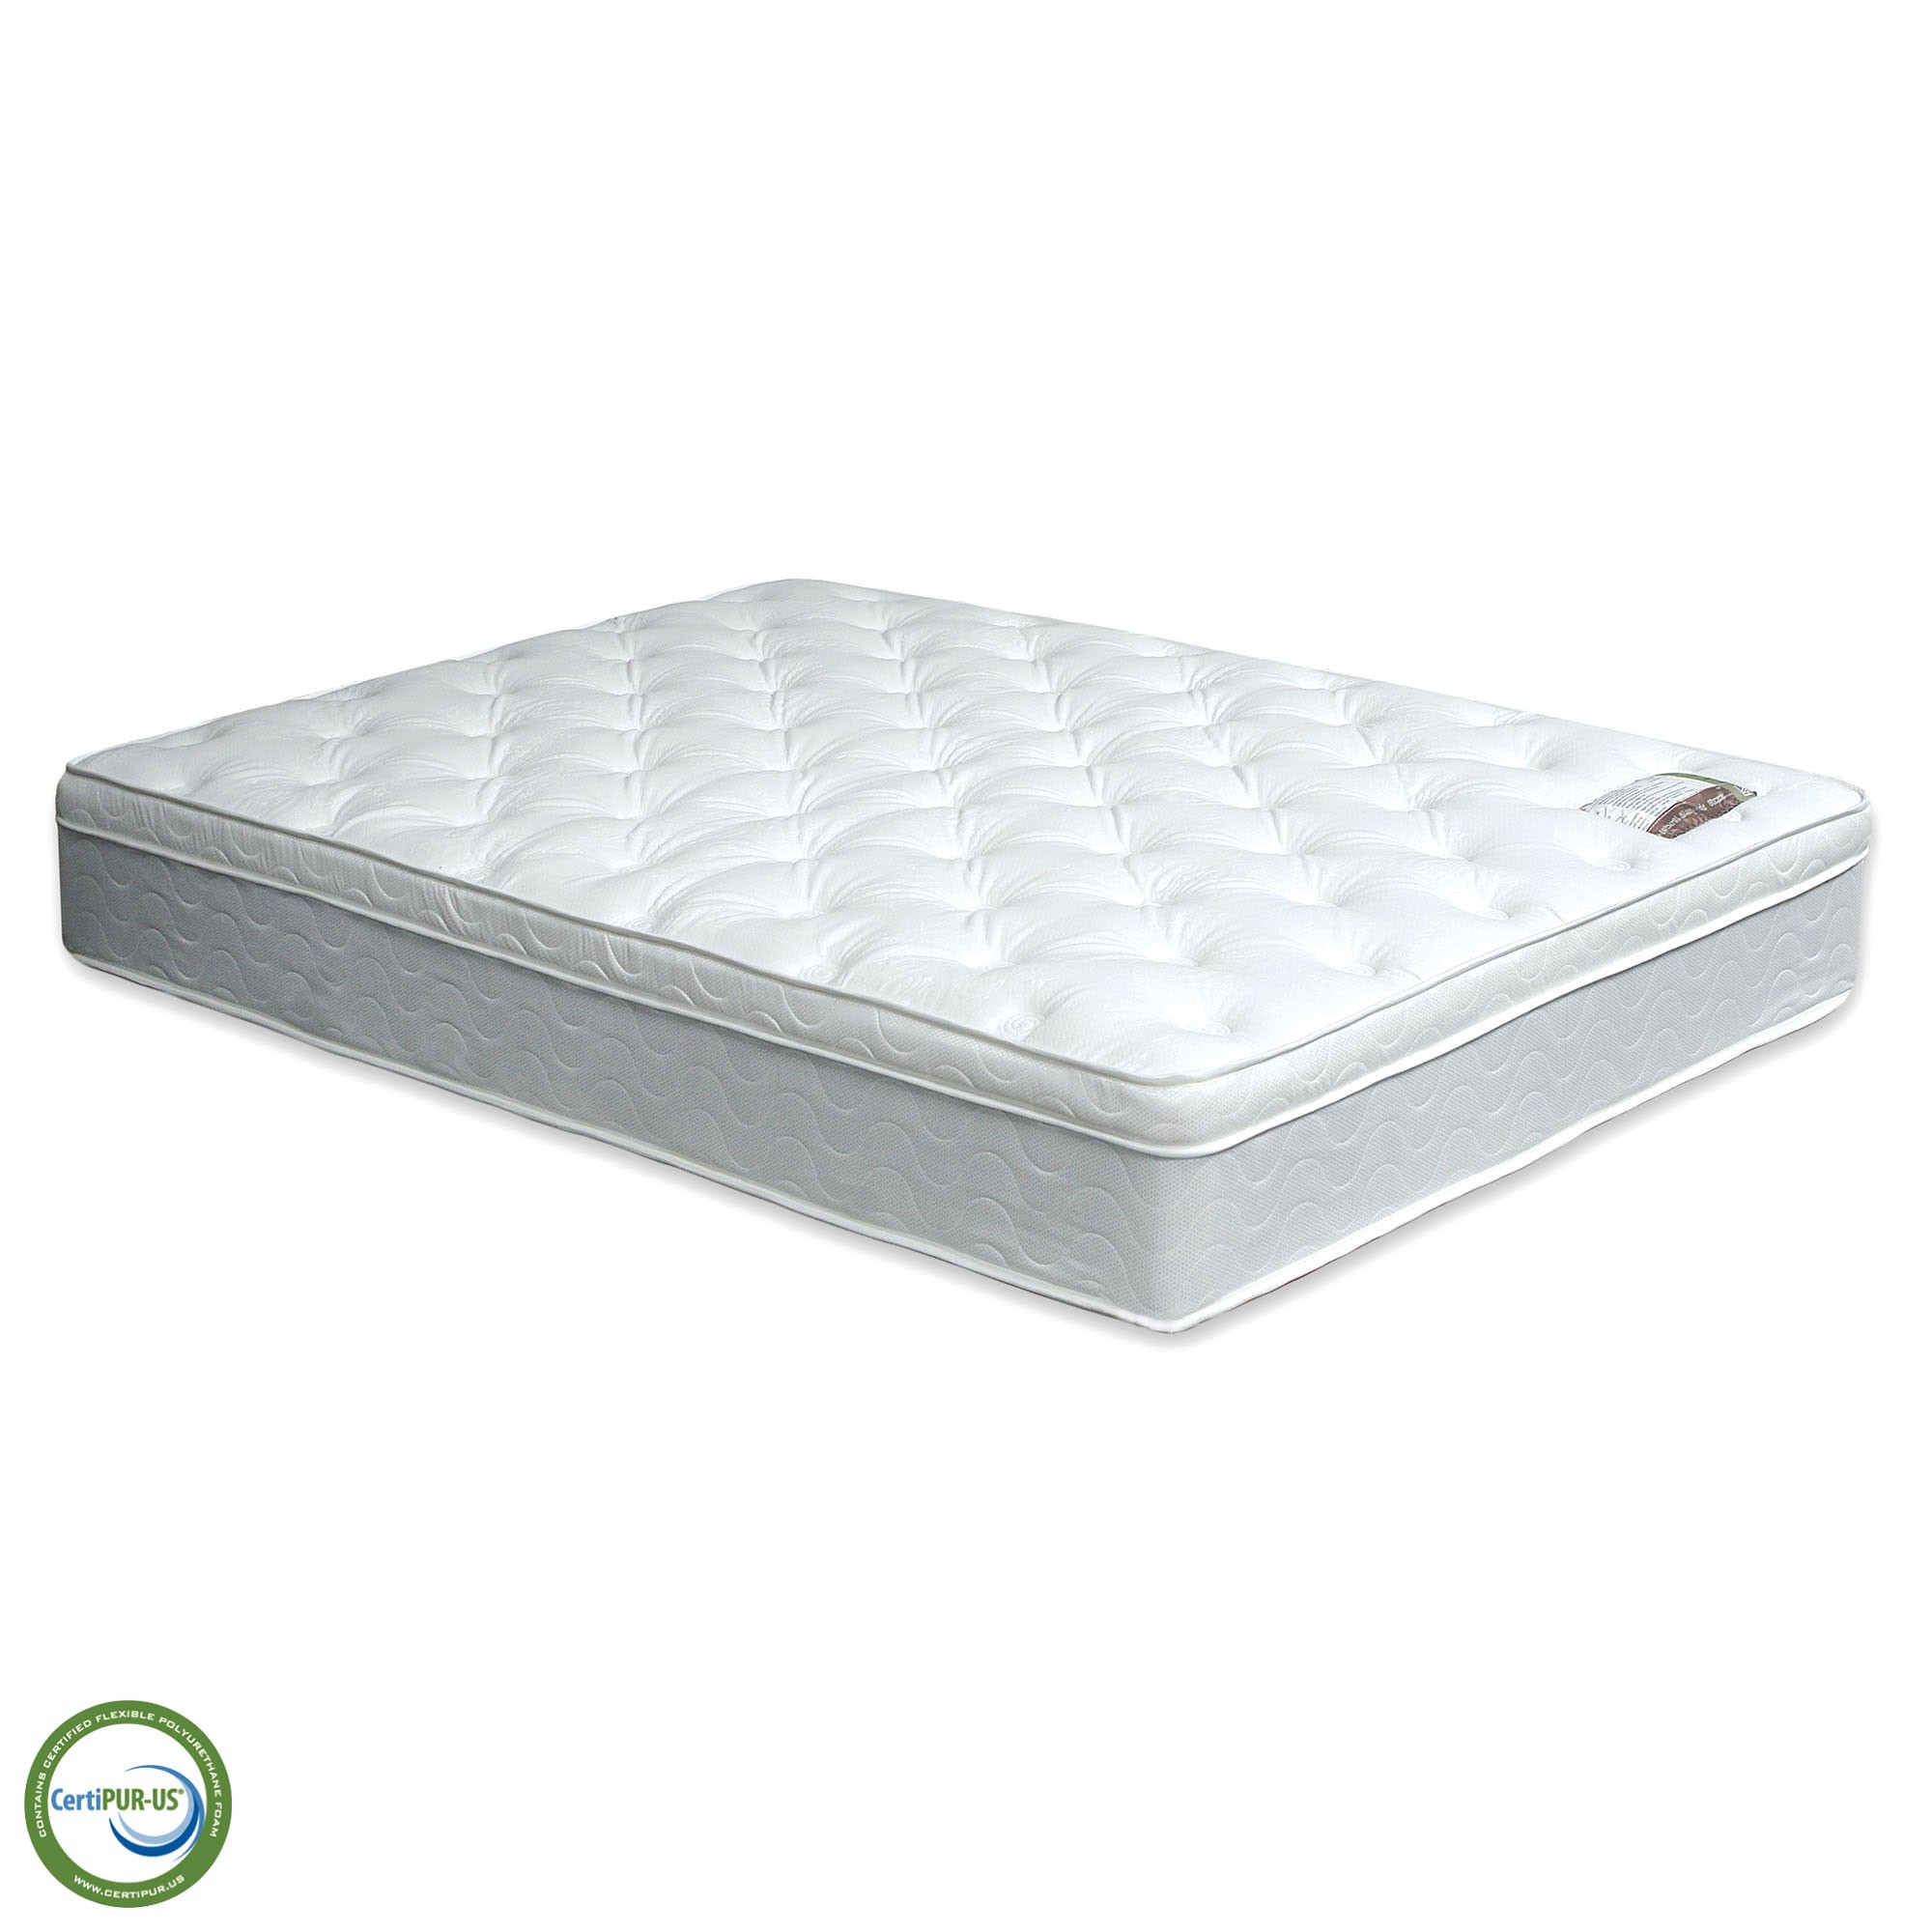 Budget Double Mattress Bird Of Paradise Euro Pillow Top Mattress Dm315 On A